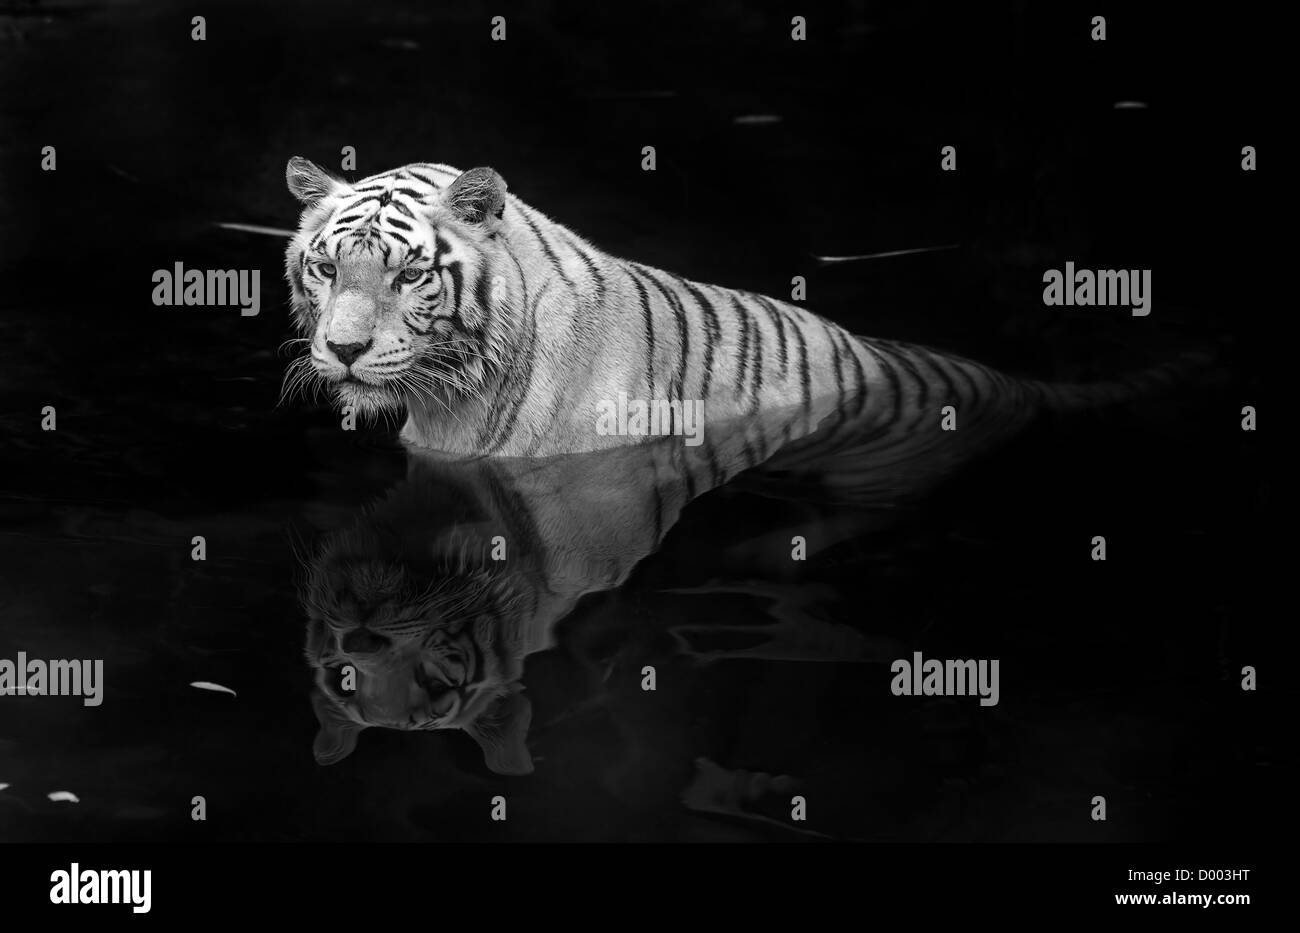 Black and white picture of a white tiger standing in water - Stock Image